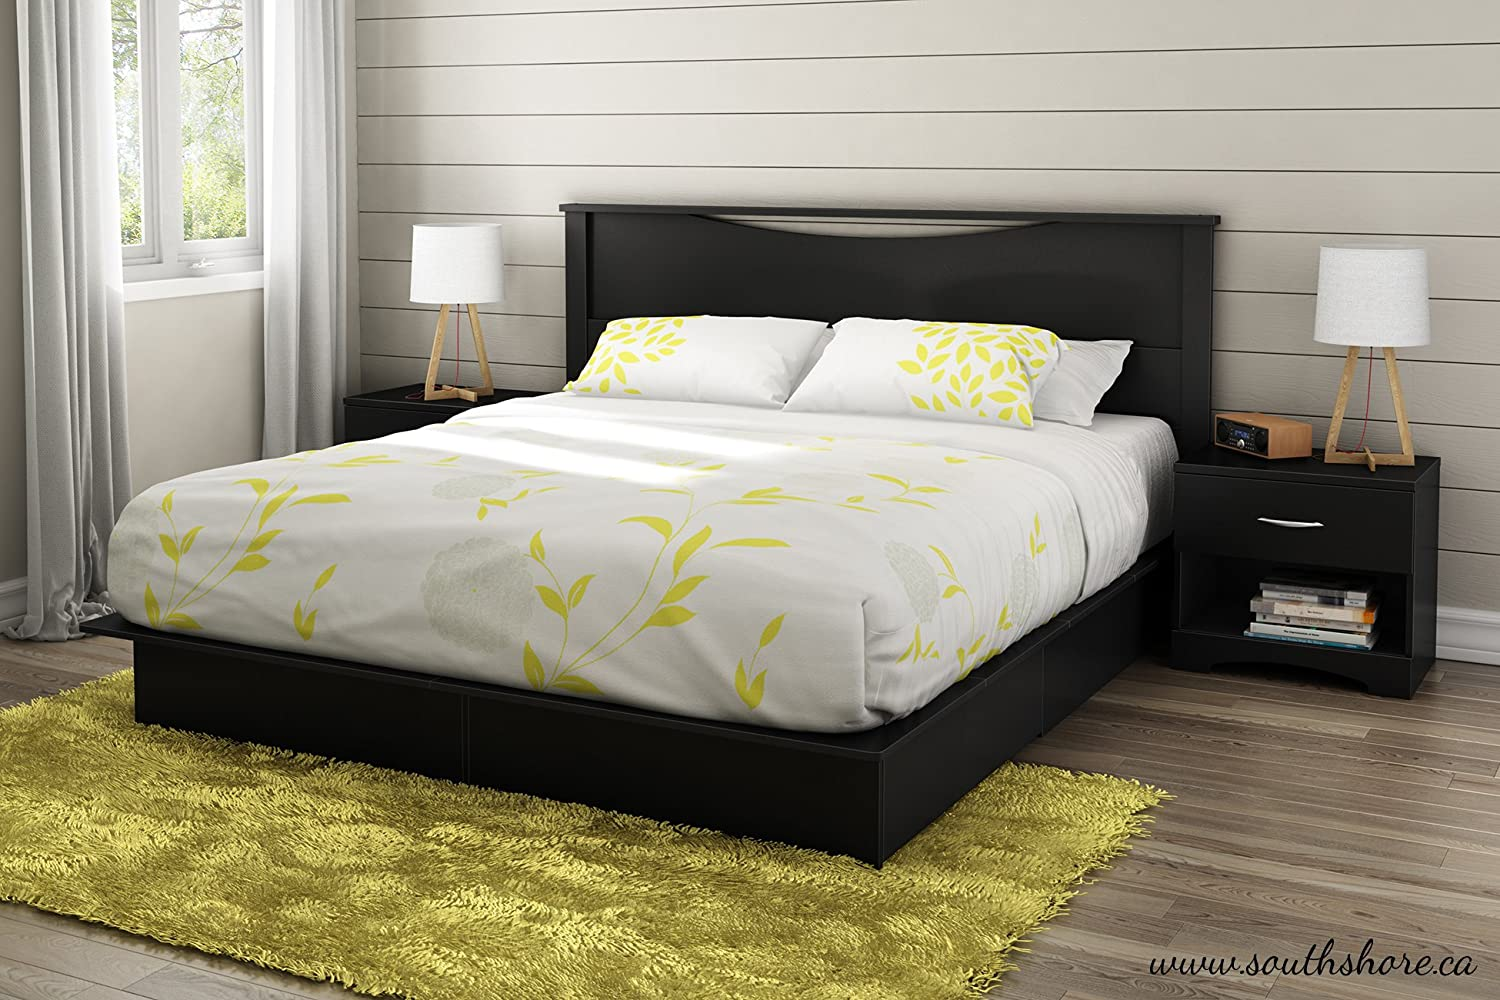 amazoncom south shore step one collection full platform bed pure black kitchen dining - Yellow Bed Frame